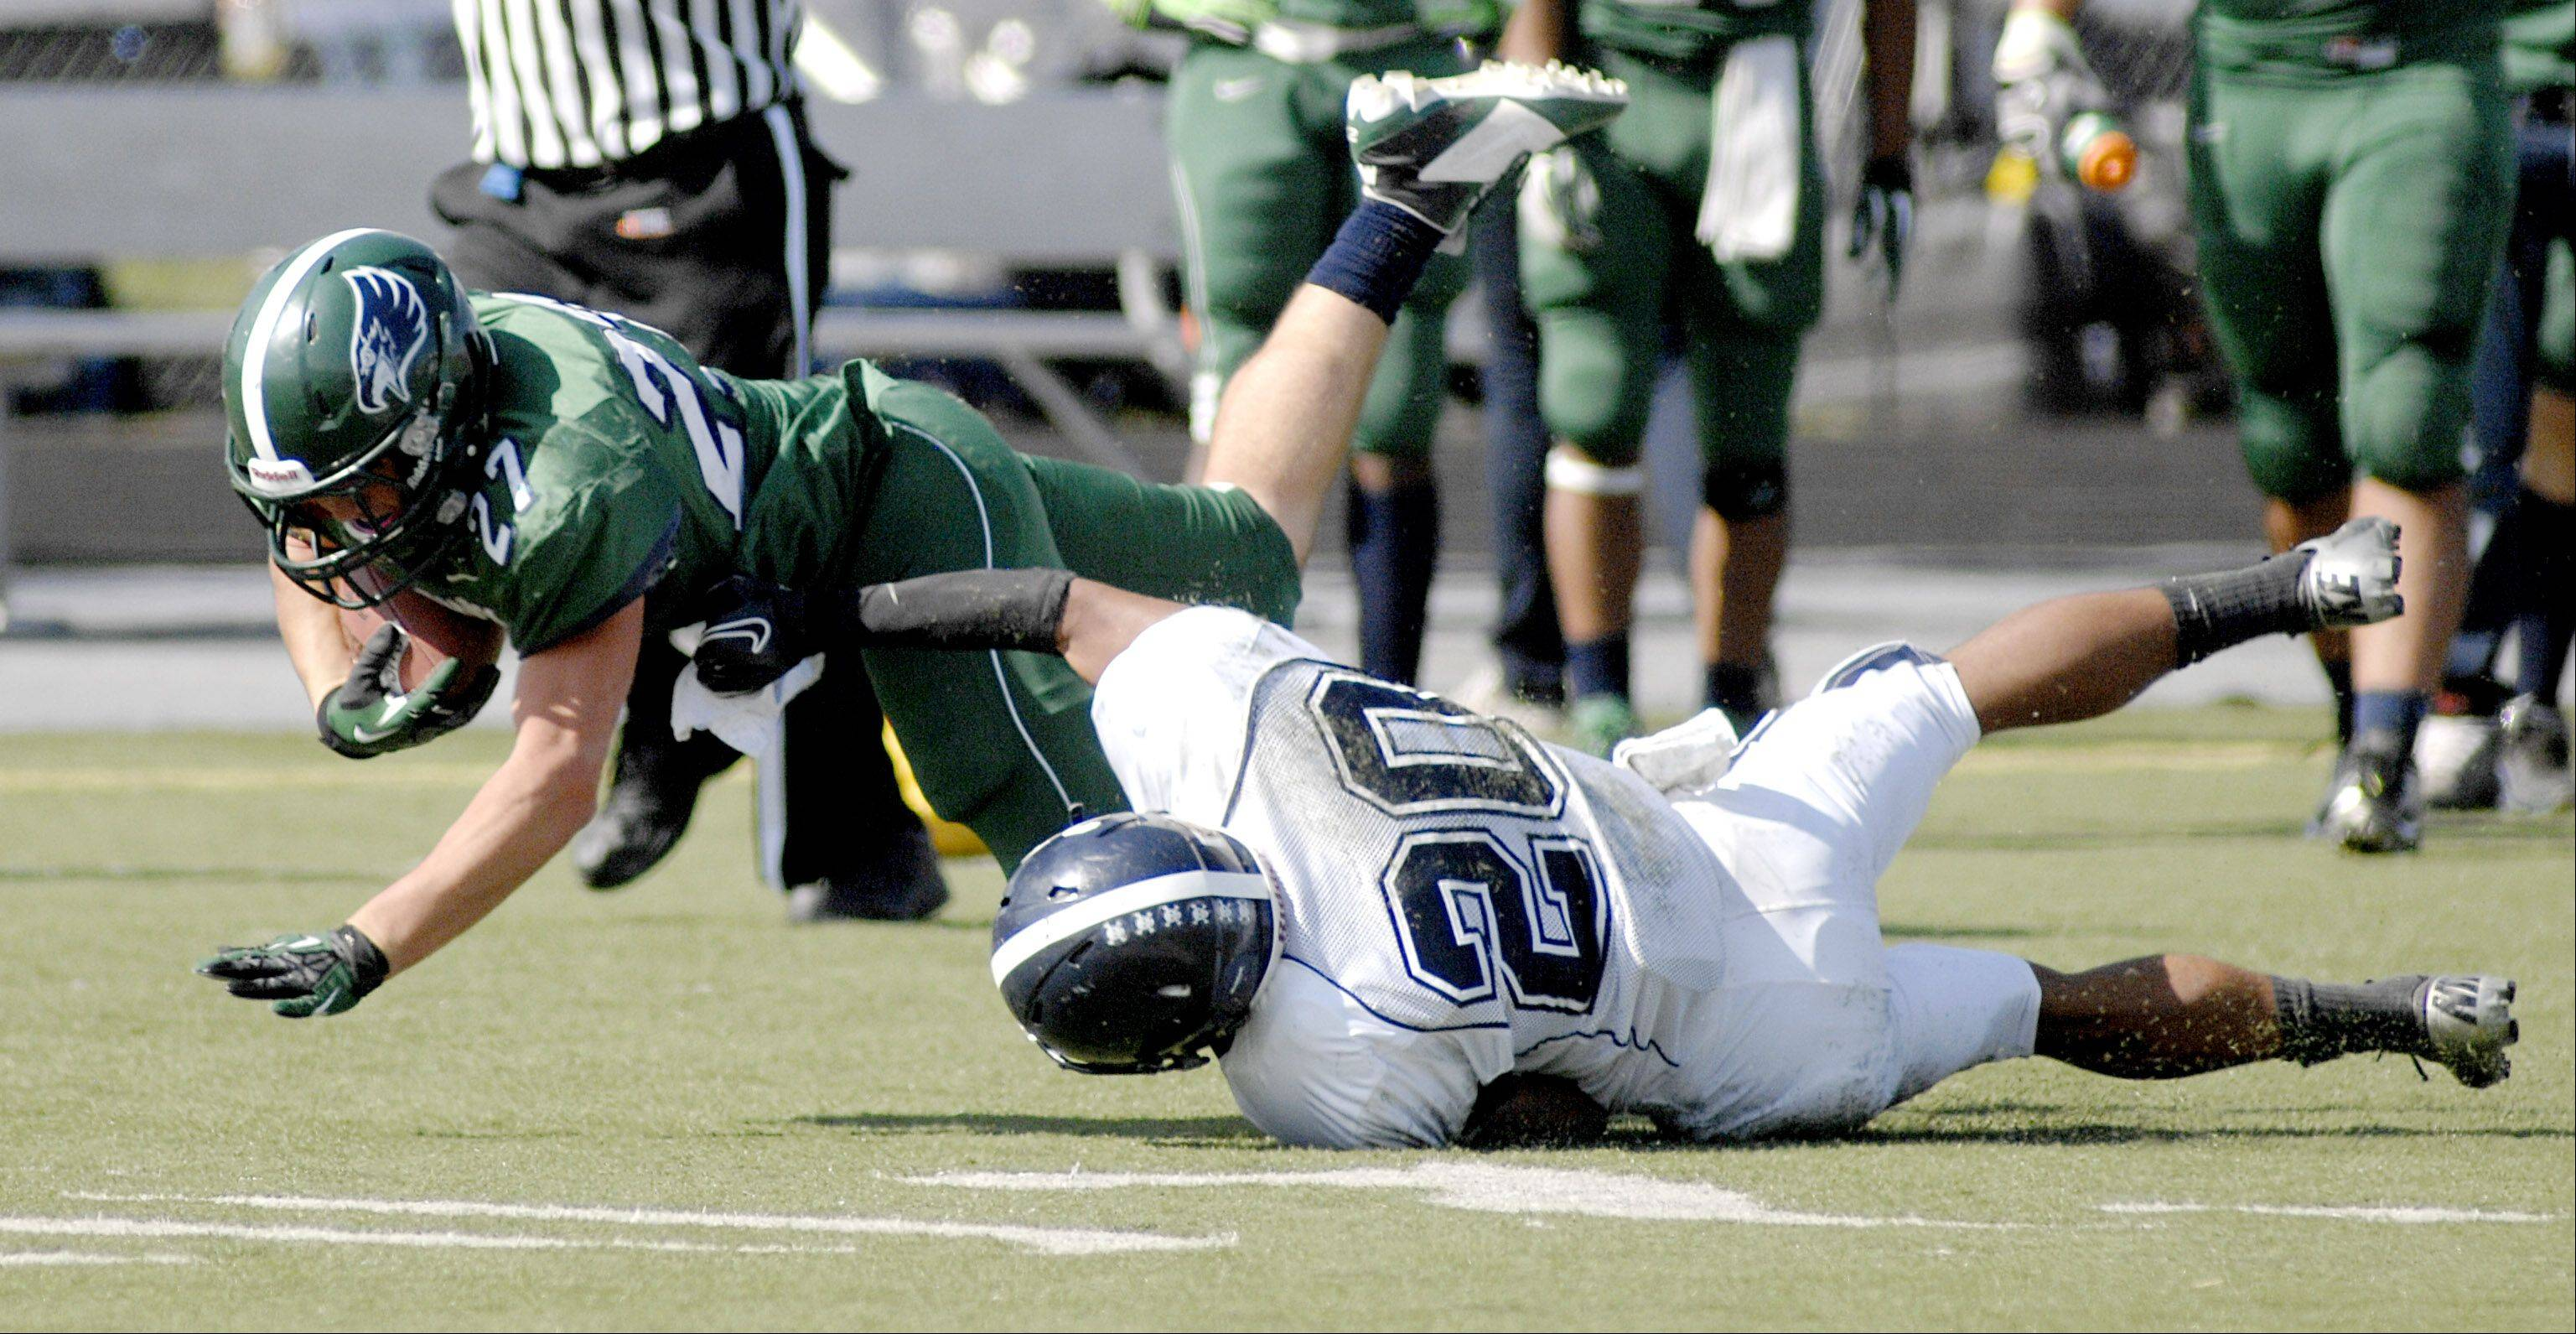 Bartlett's Aaron Everson is taken down by Lake Park's Antonio Shenault in the second quarter on Saturday, September 30.